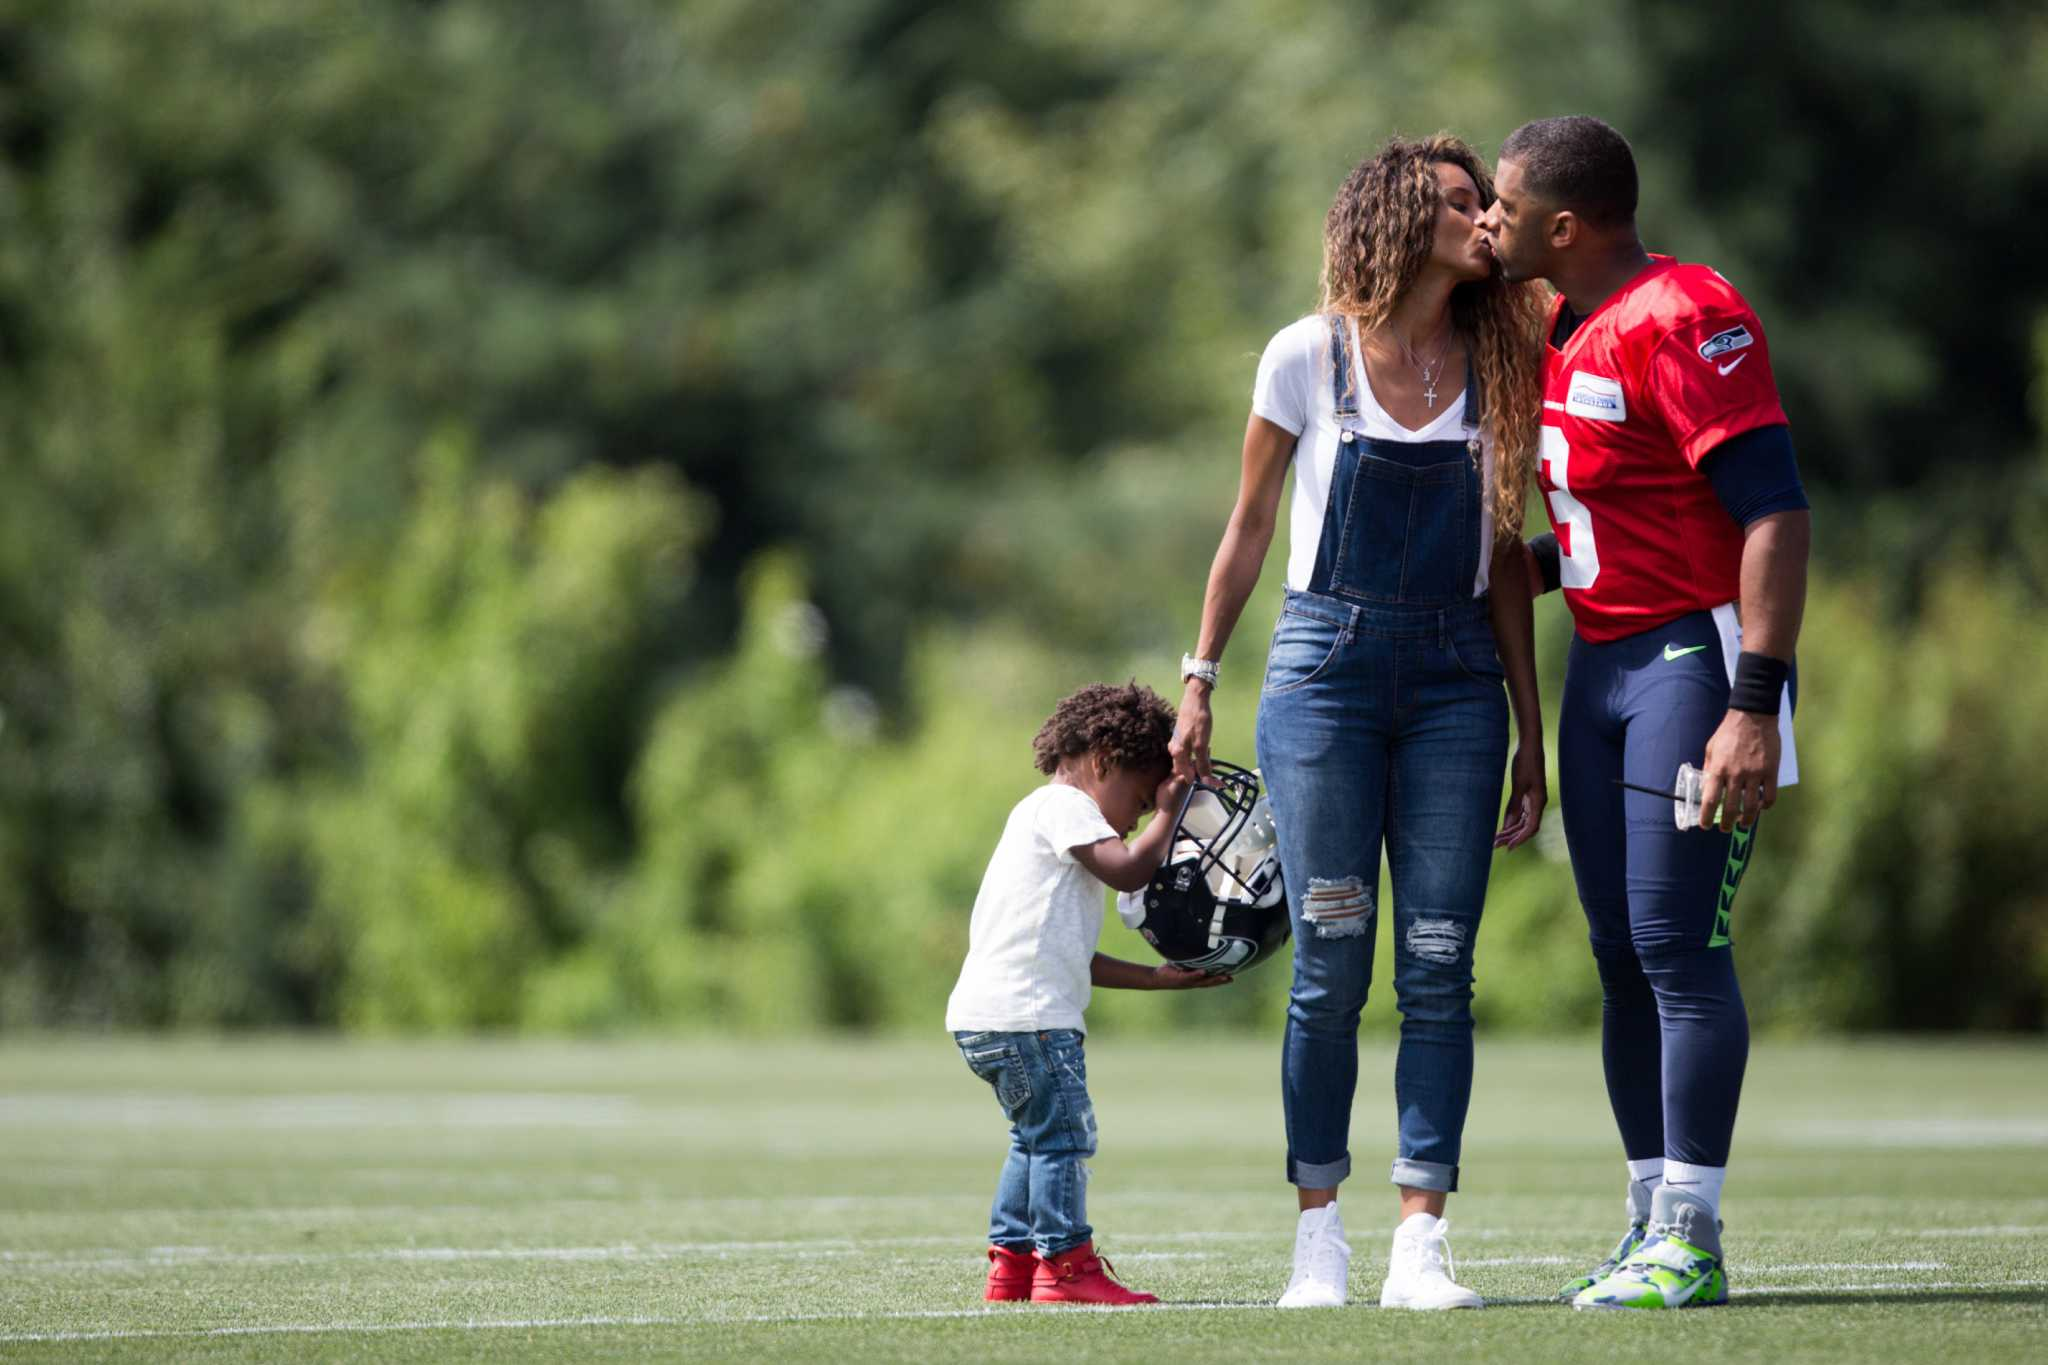 Ciara, Russell Wilson and Baby Future went nude for a